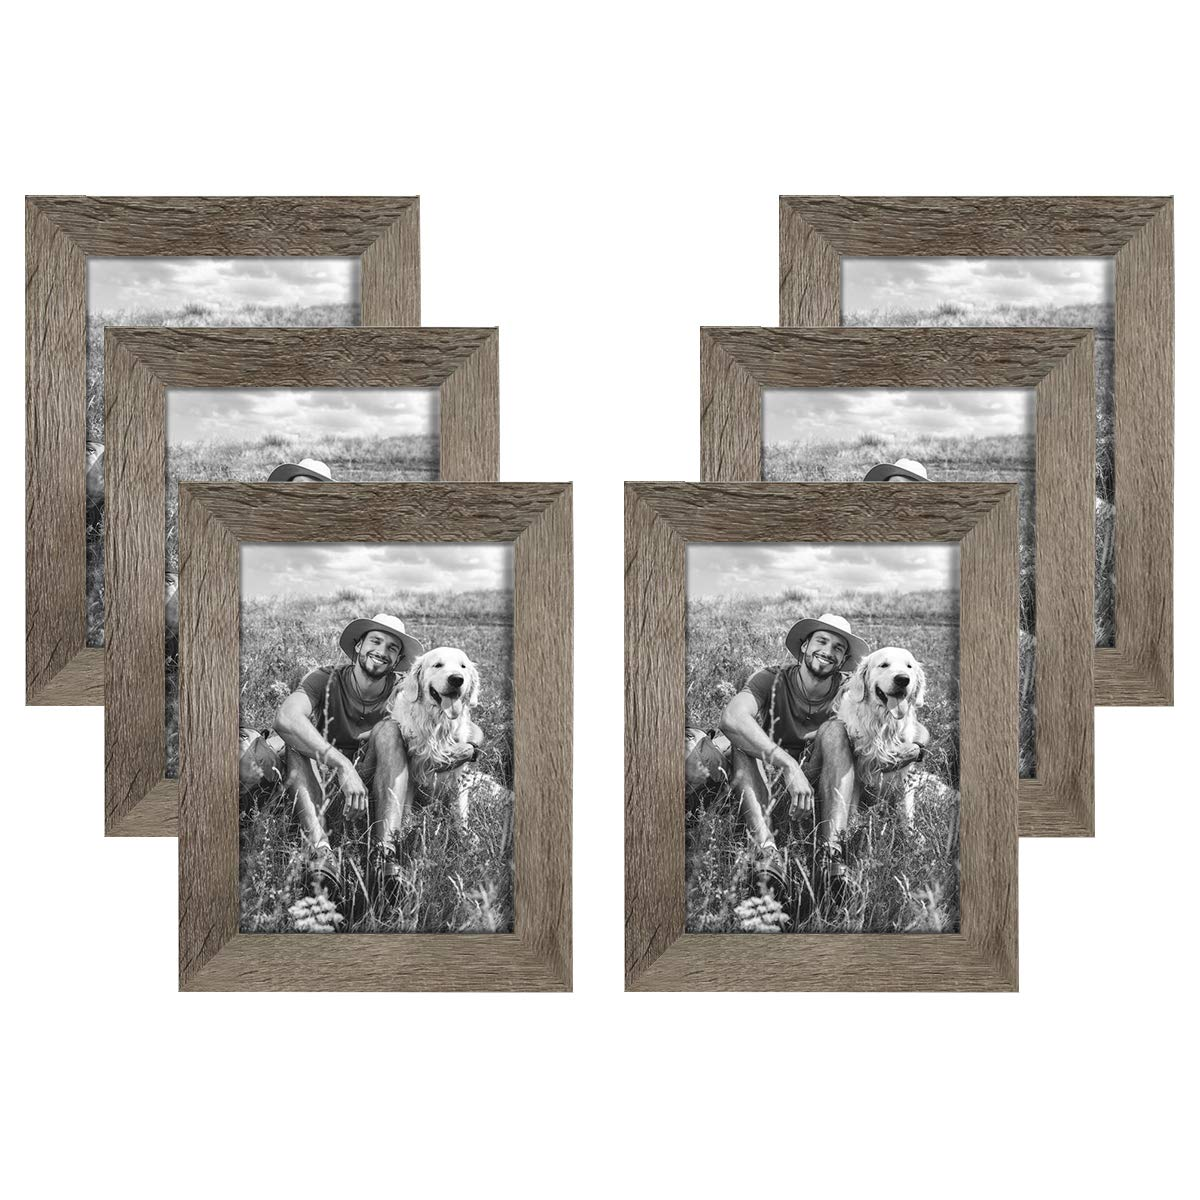 NUOLAN 5x7 Picture Frame Rustic Gray Wood Pattern Art Photo Frames 6 Packs for Wall or Tabletop Display (NL-PF5X7-RG) by NUOLAN